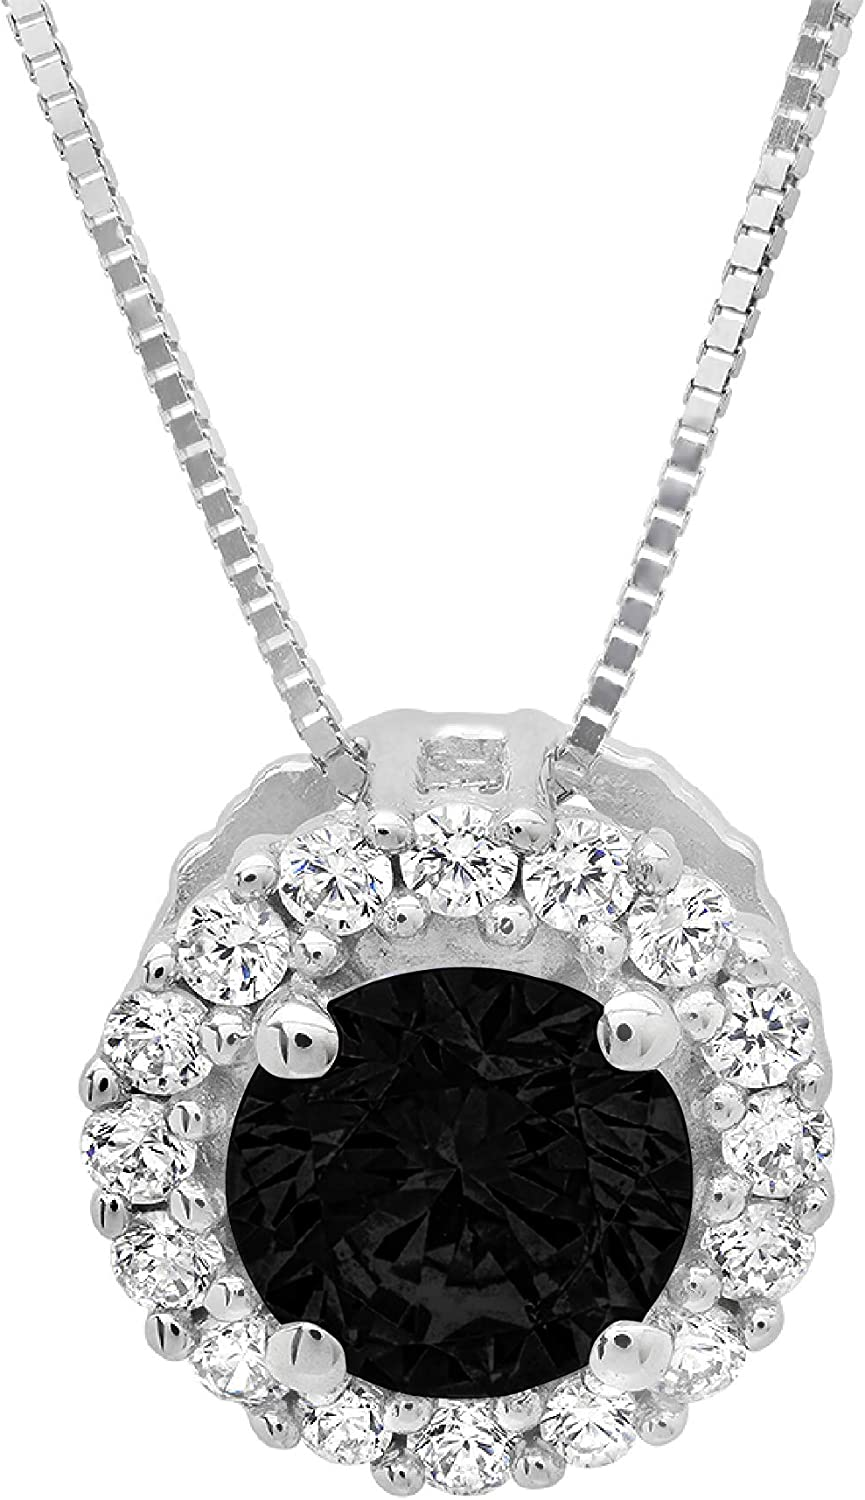 Clara Pucci 1.4 ct Brilliant Round Cut Pave Halo Stunning Genuine Flawless Natural Black Onyx Gemstone Solitaire Pendant Necklace With 16